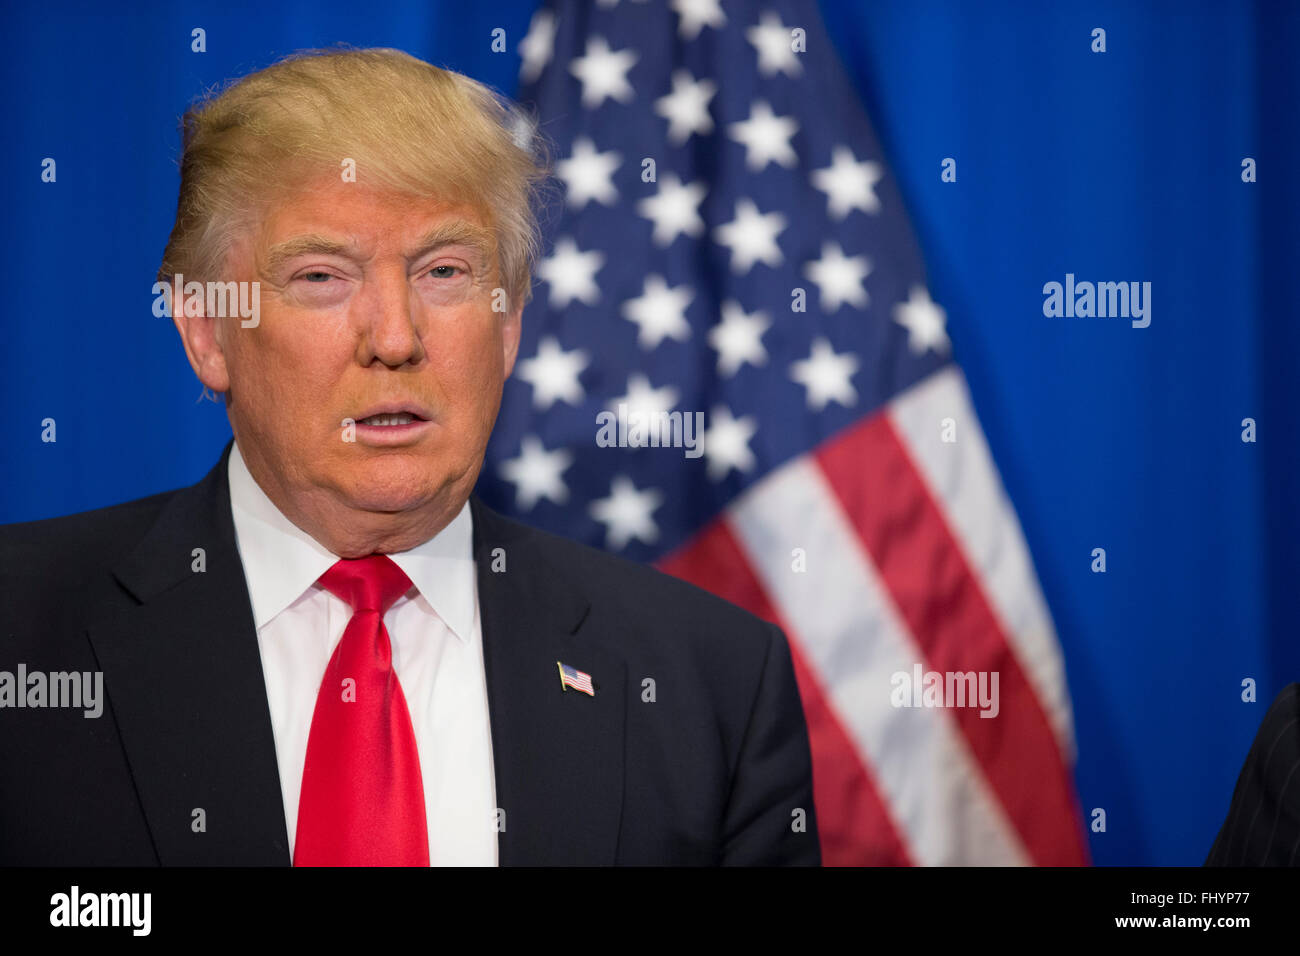 Republican presidential nominee candidate Donald Trump speaks at a campaign rally in Fort Worth Texas - Stock Image